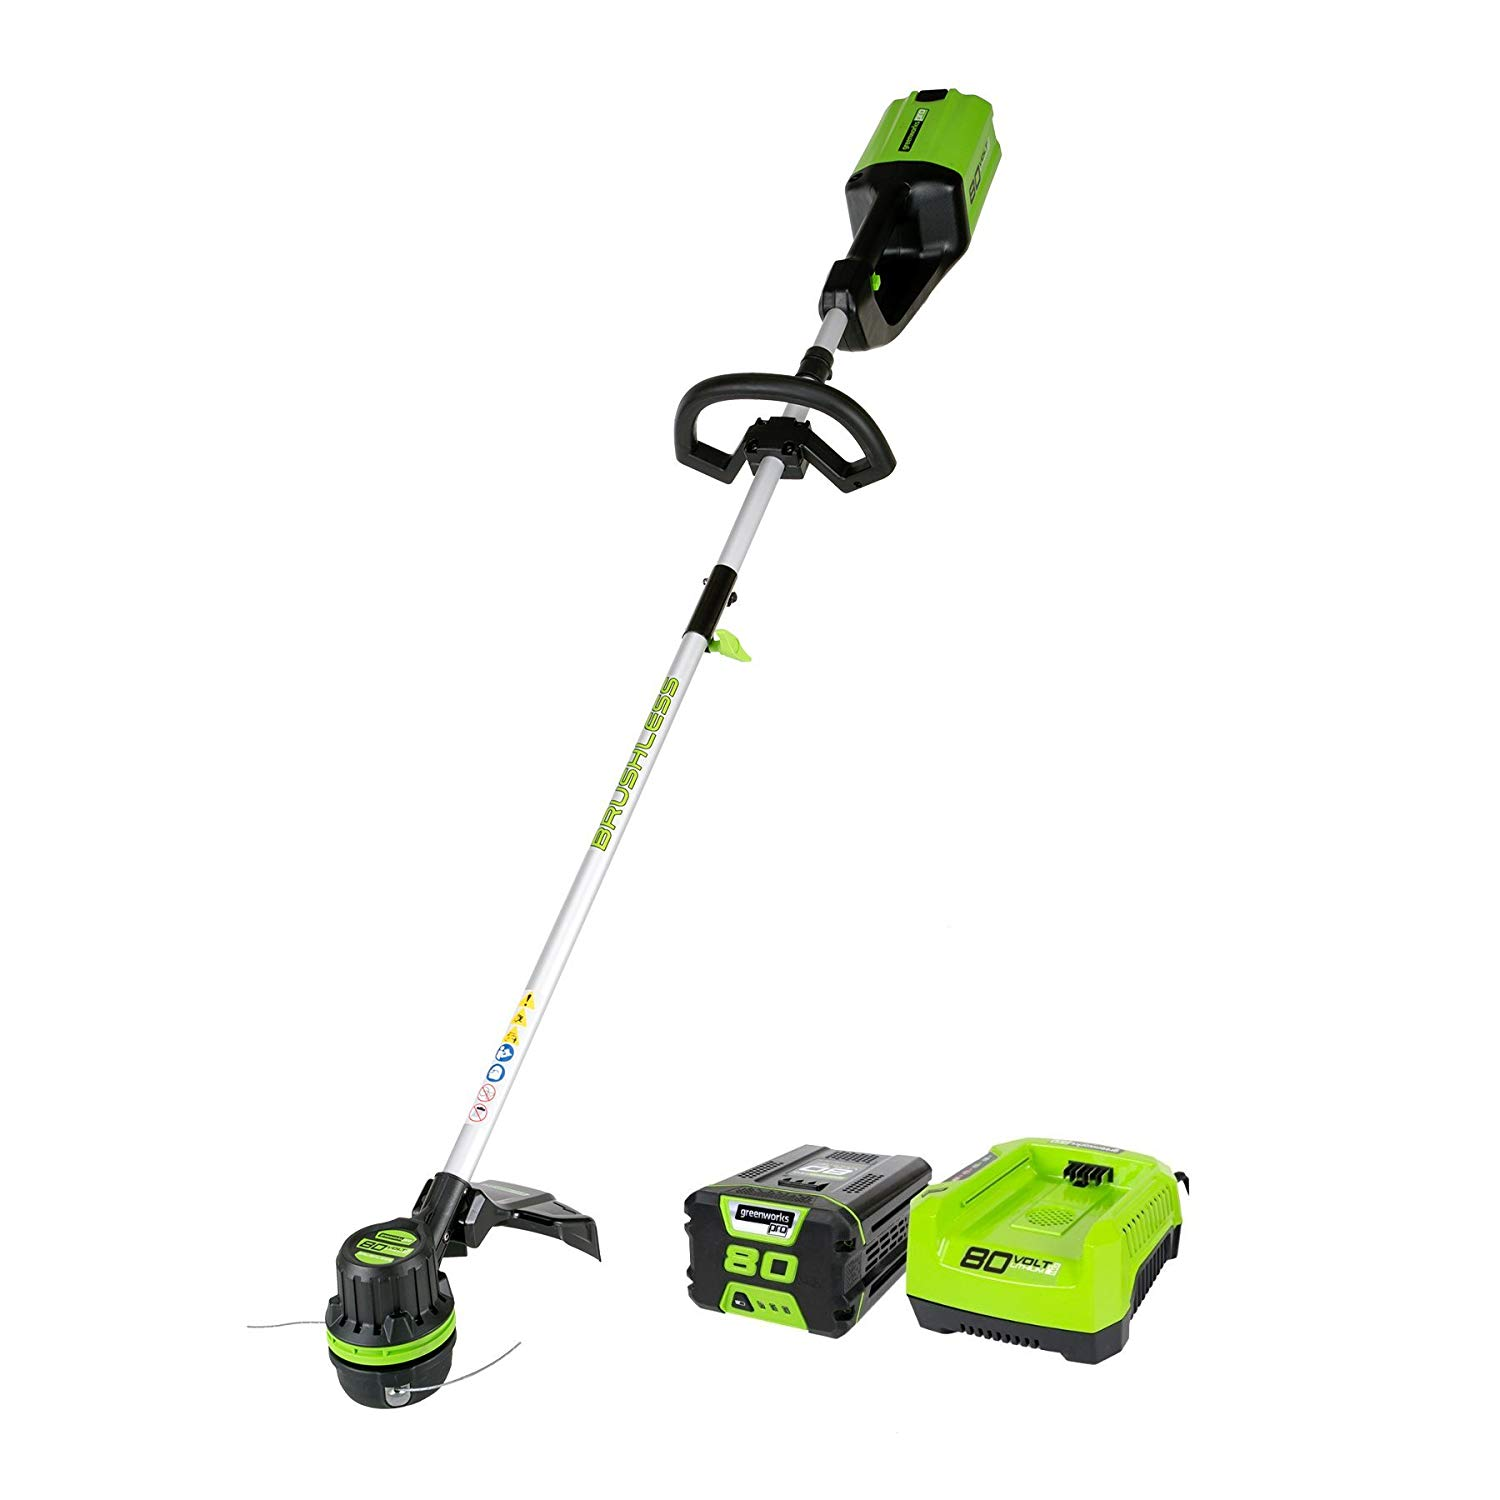 Best Cordless String Trimmer 2021 6 Best Cordless Weed Eater 2020 Guide   Best Garden Outdoor Lawn